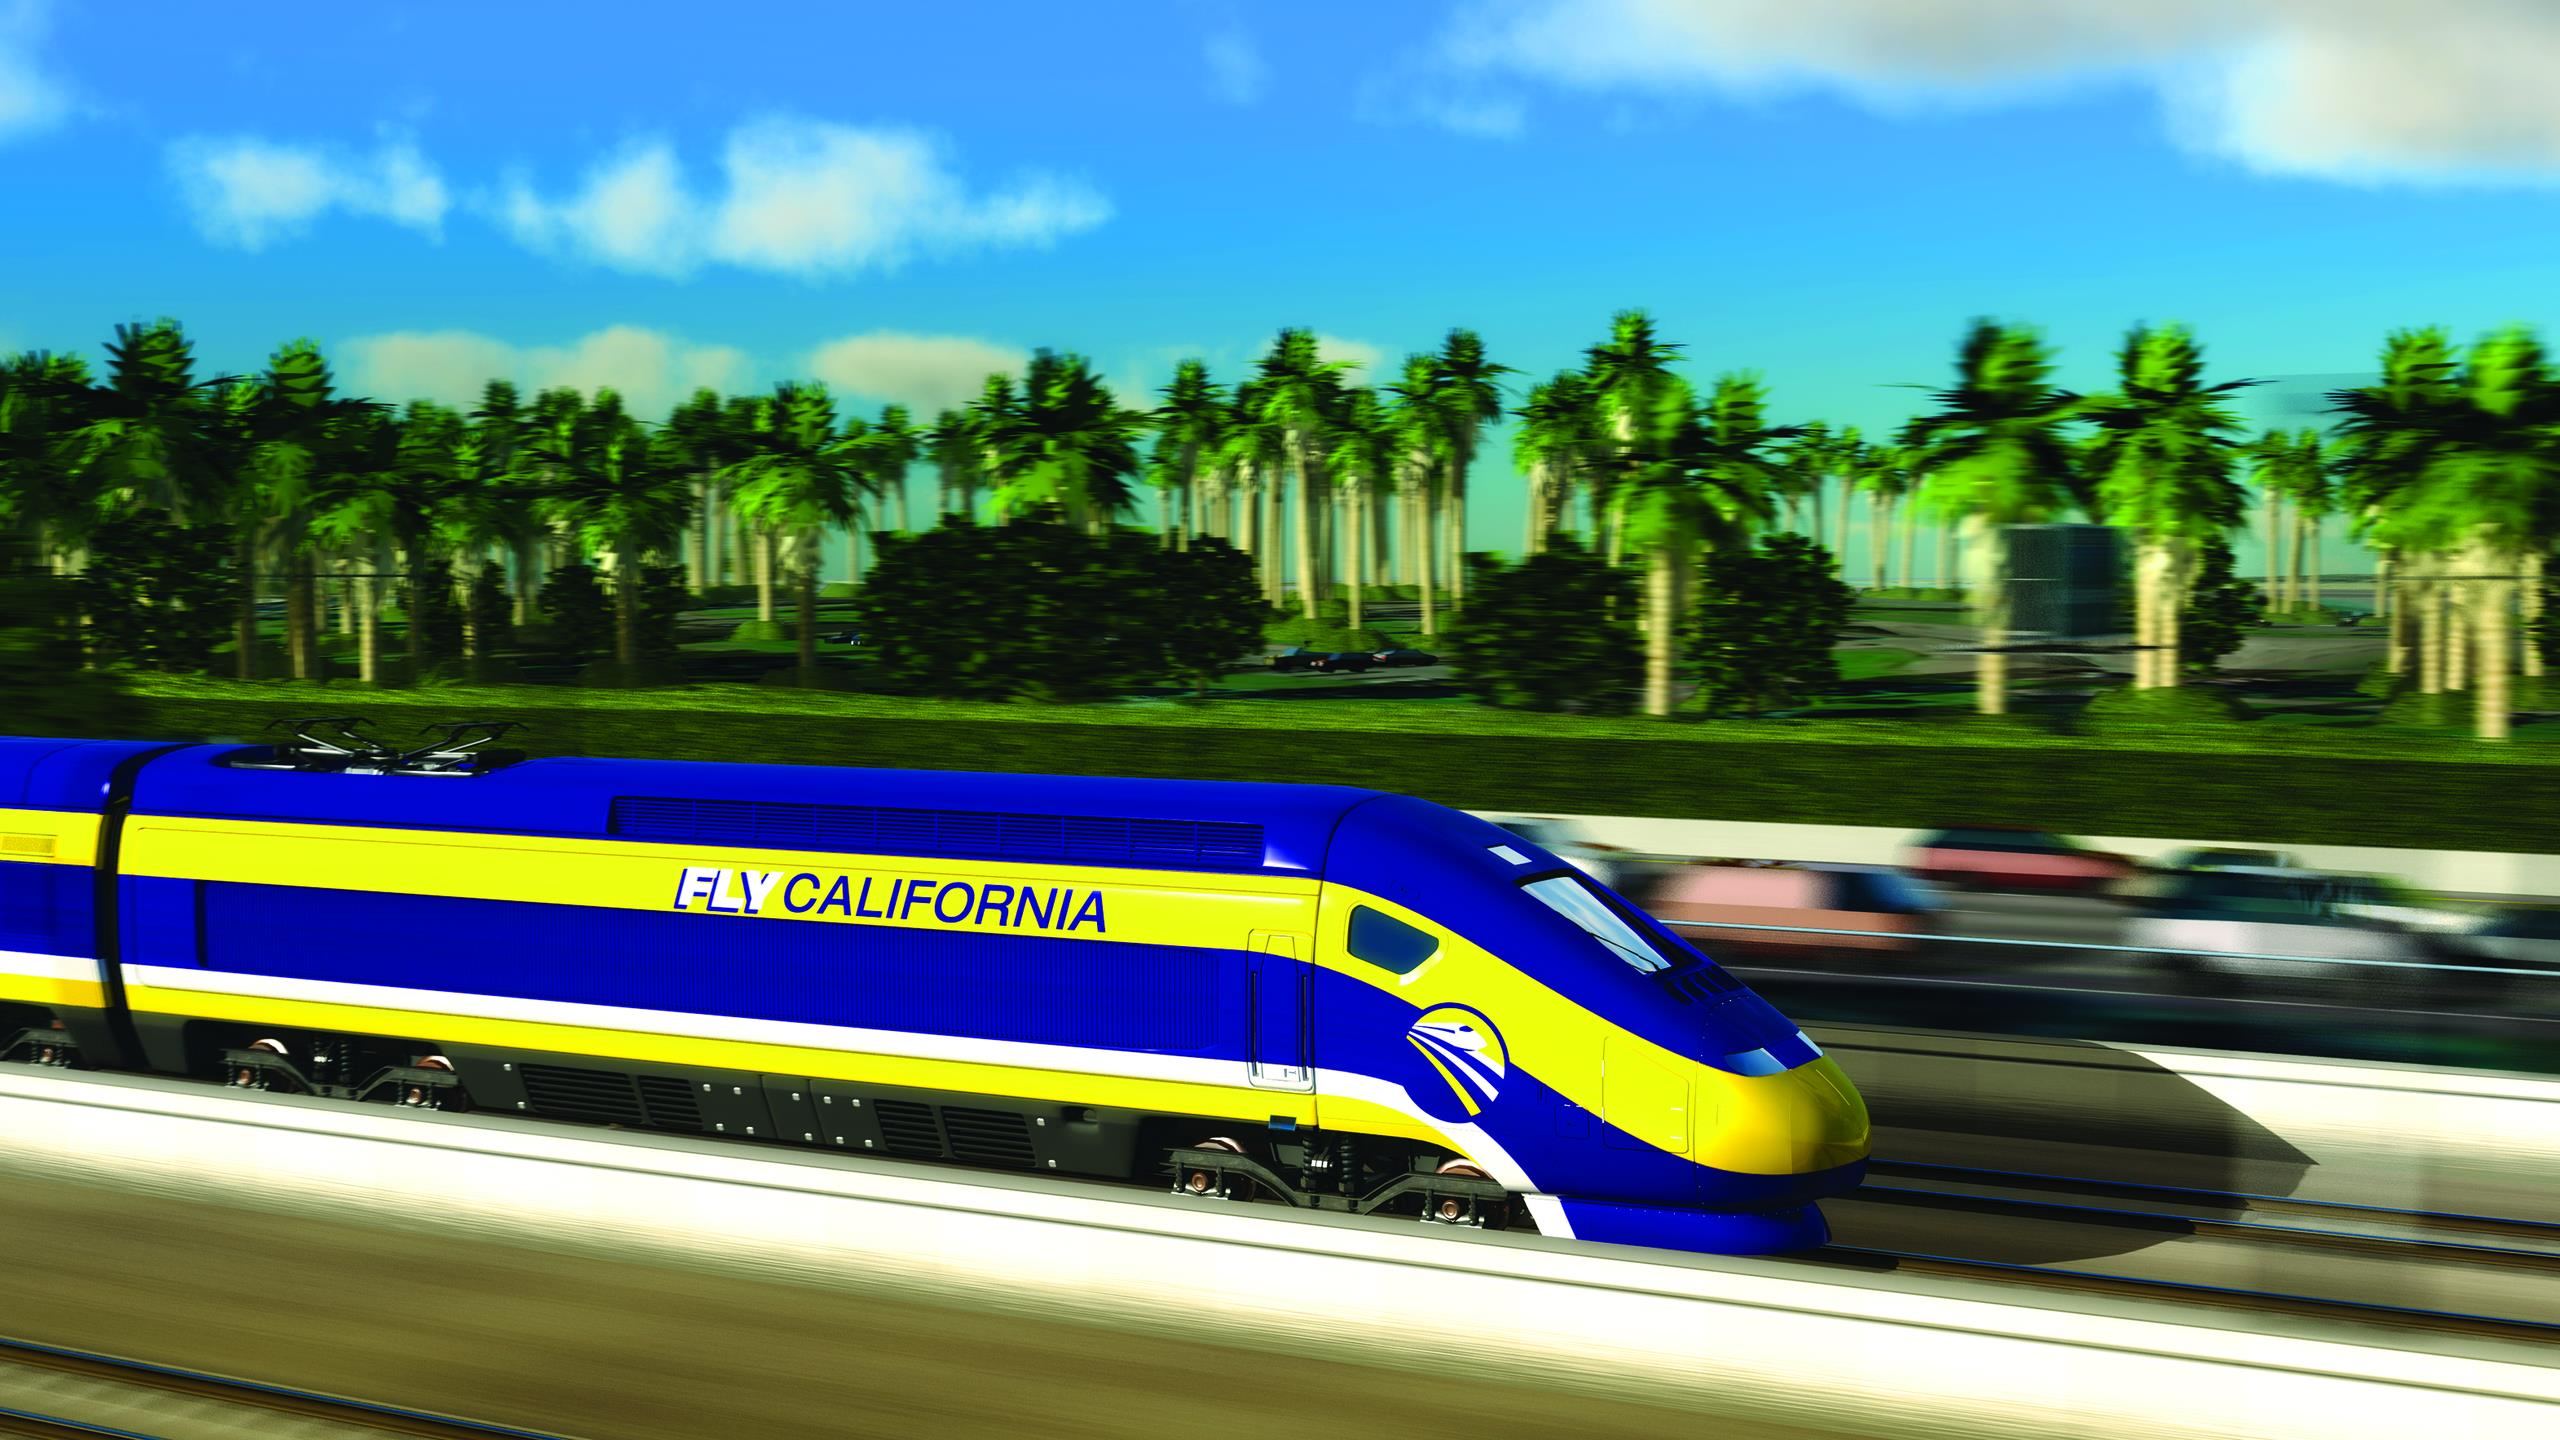 Computerized image of a train on the California high-speed rail